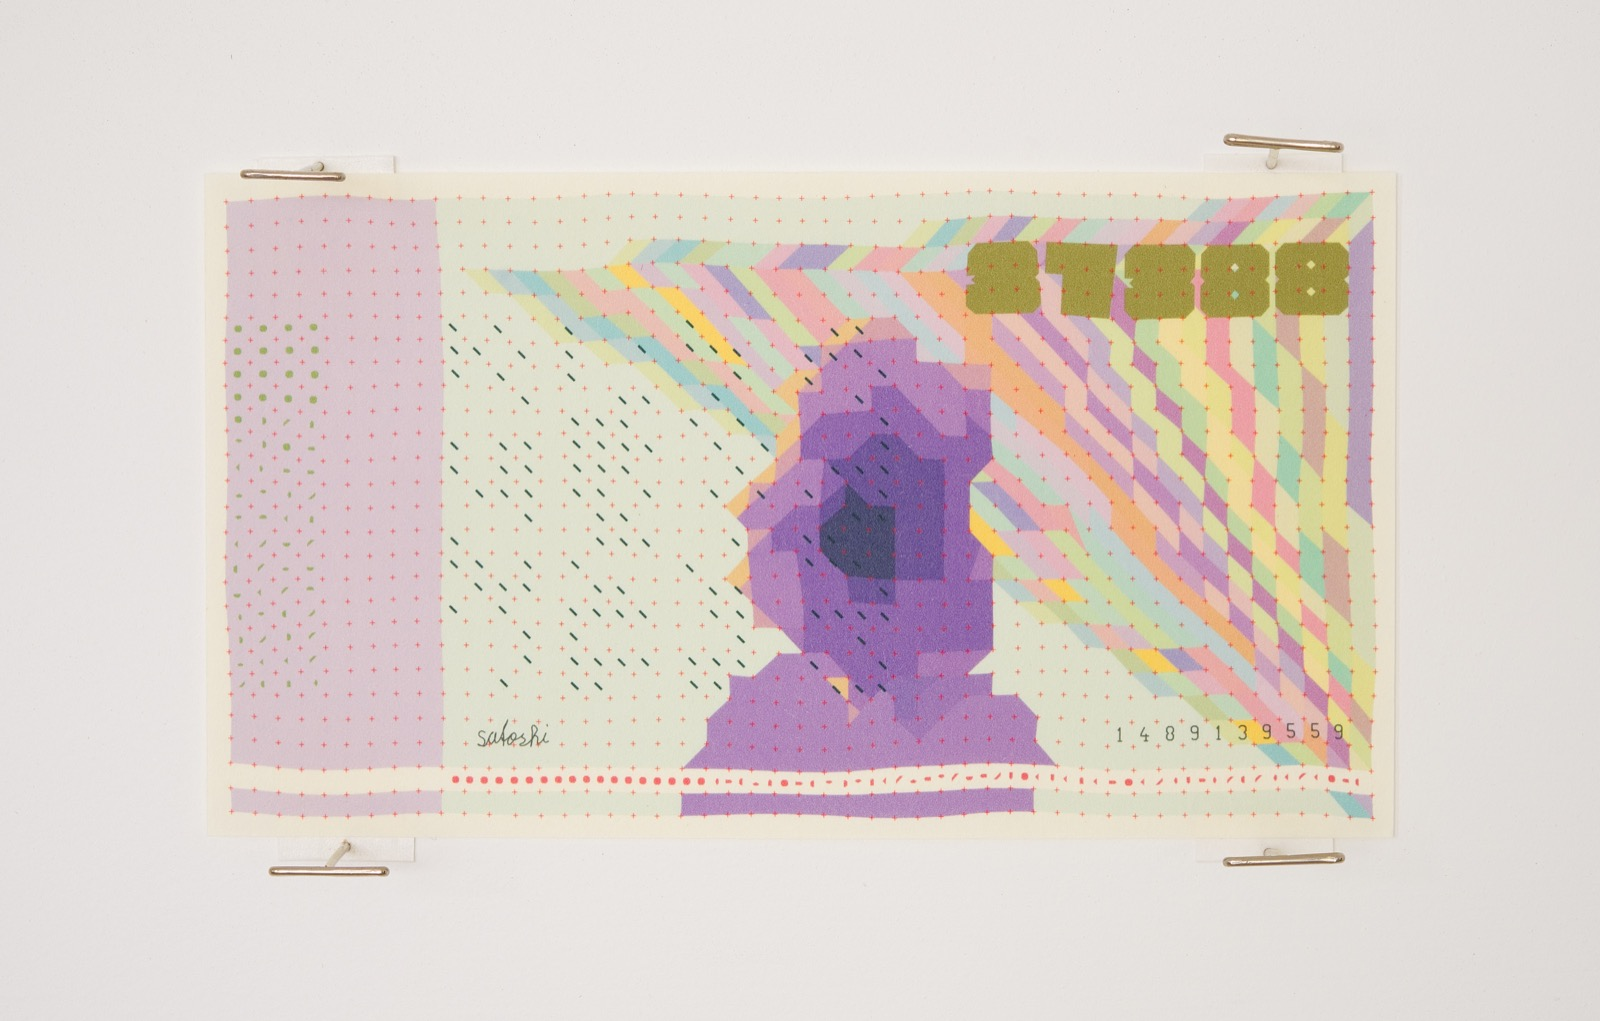 block bills 64 banknotes generated from the bitcoin blockchain